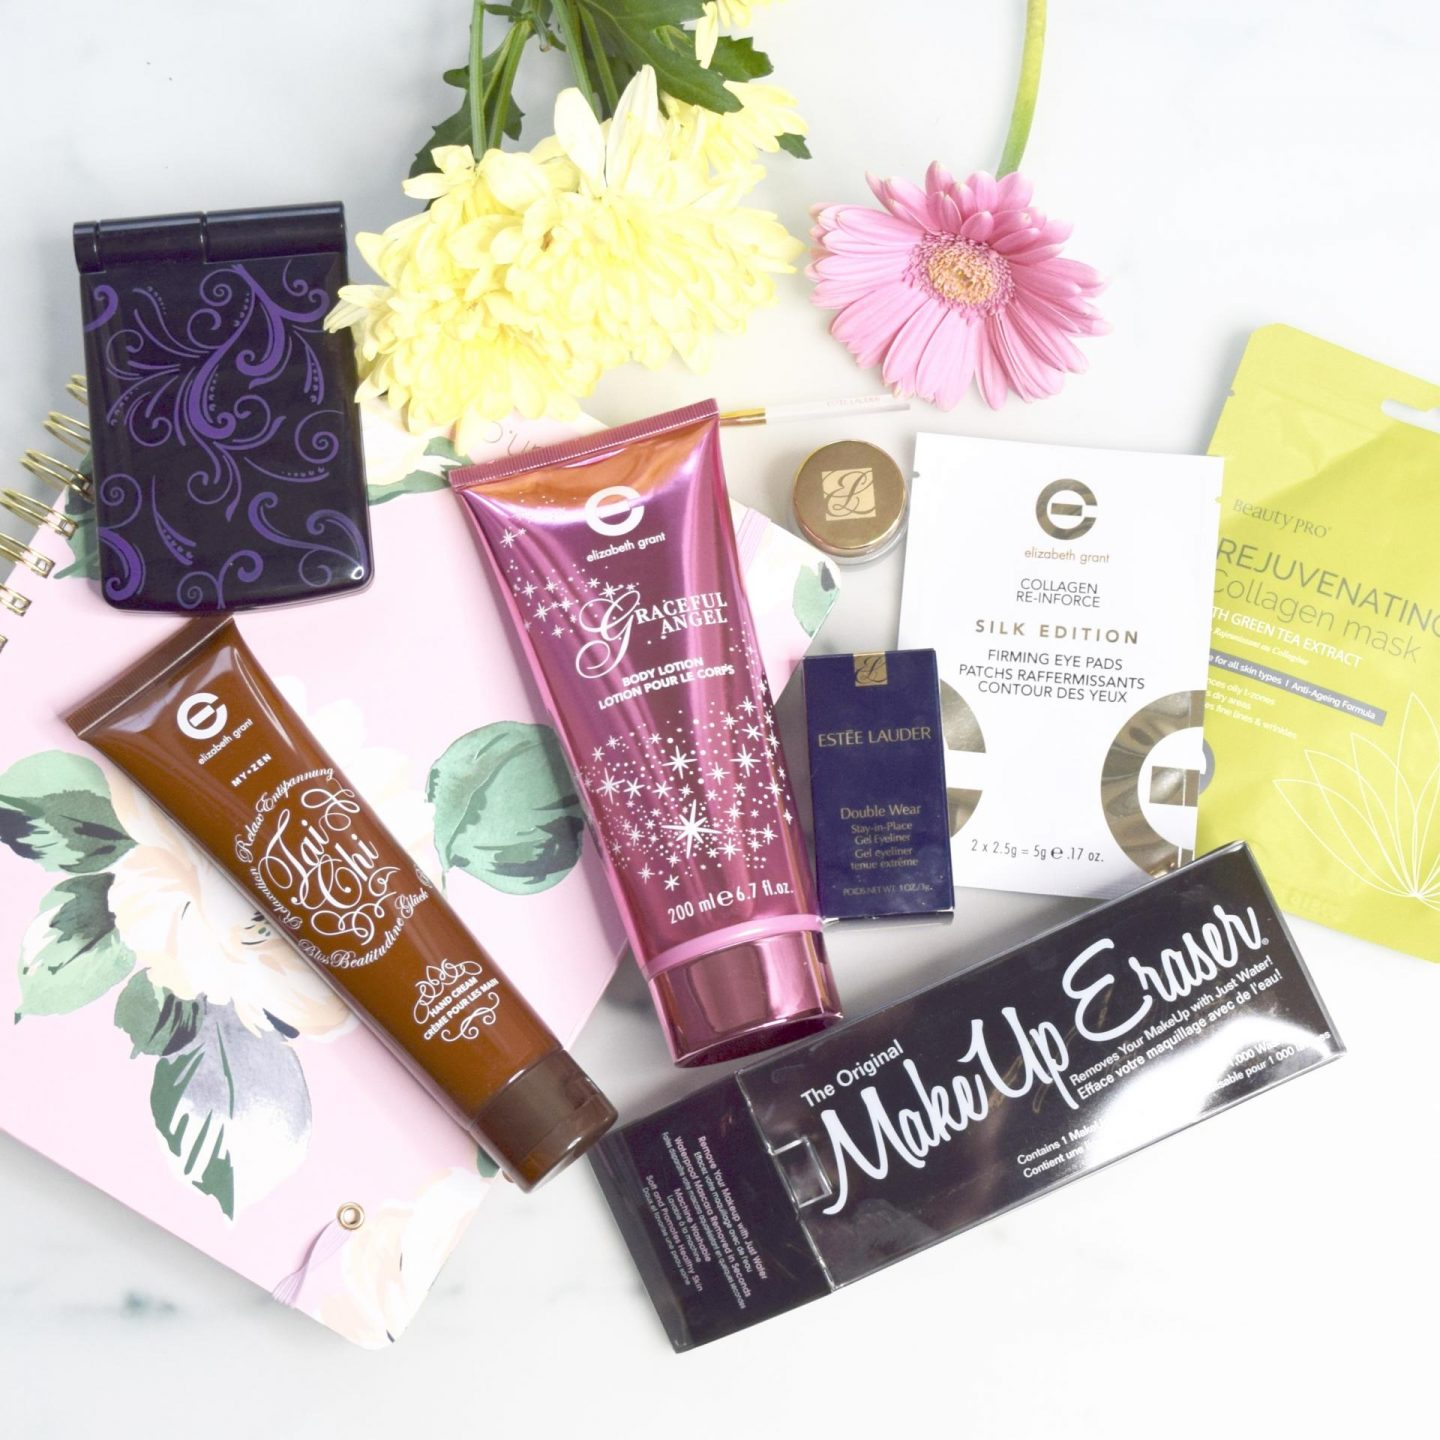 How to Sell Beauty Products From Home by Angela Robinson - Updated September 26, This article is rated moderately challenging due to the fact that building a business is a challenge in itself.